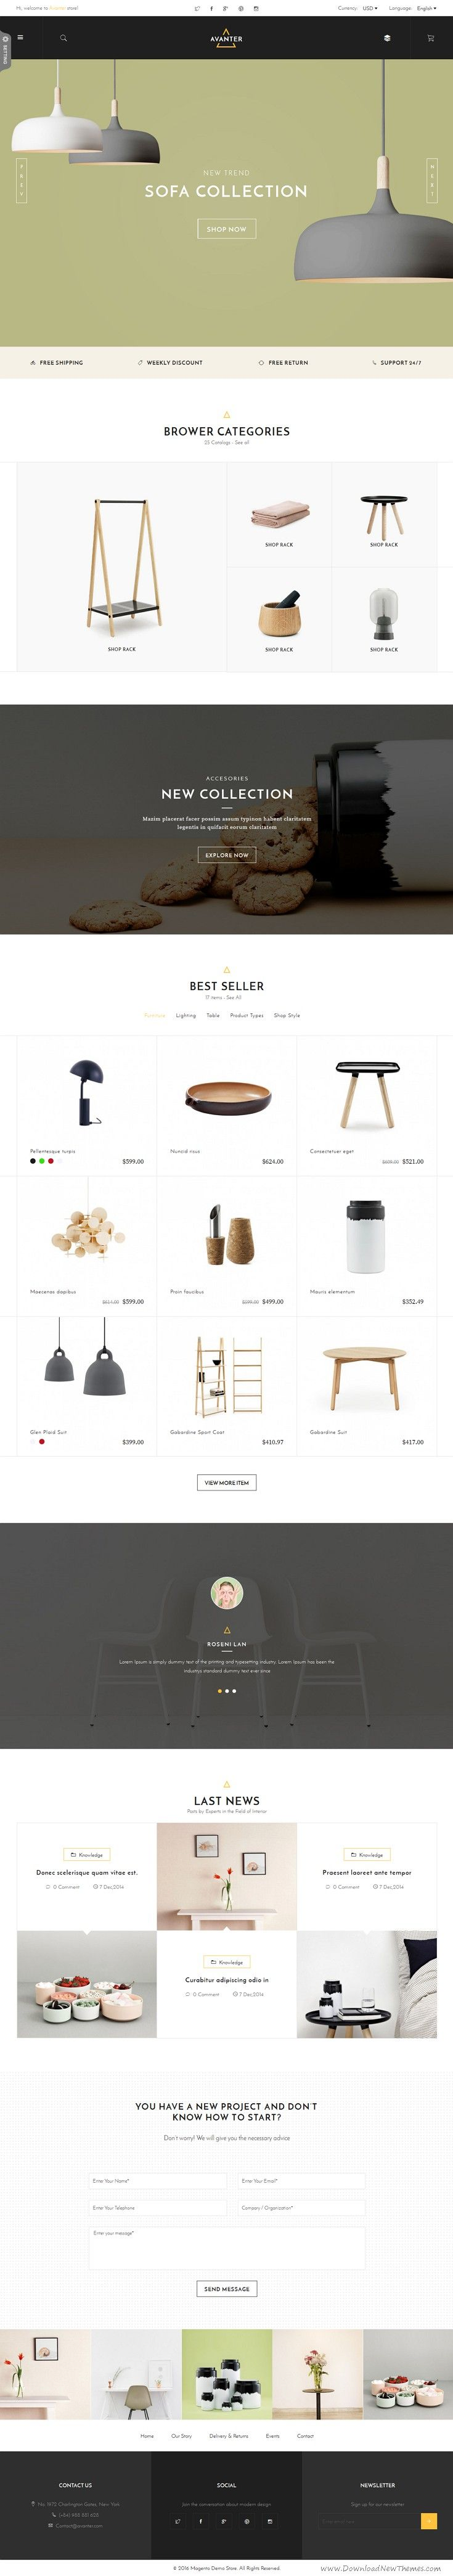 Avanter - Funiture Store Magento Template